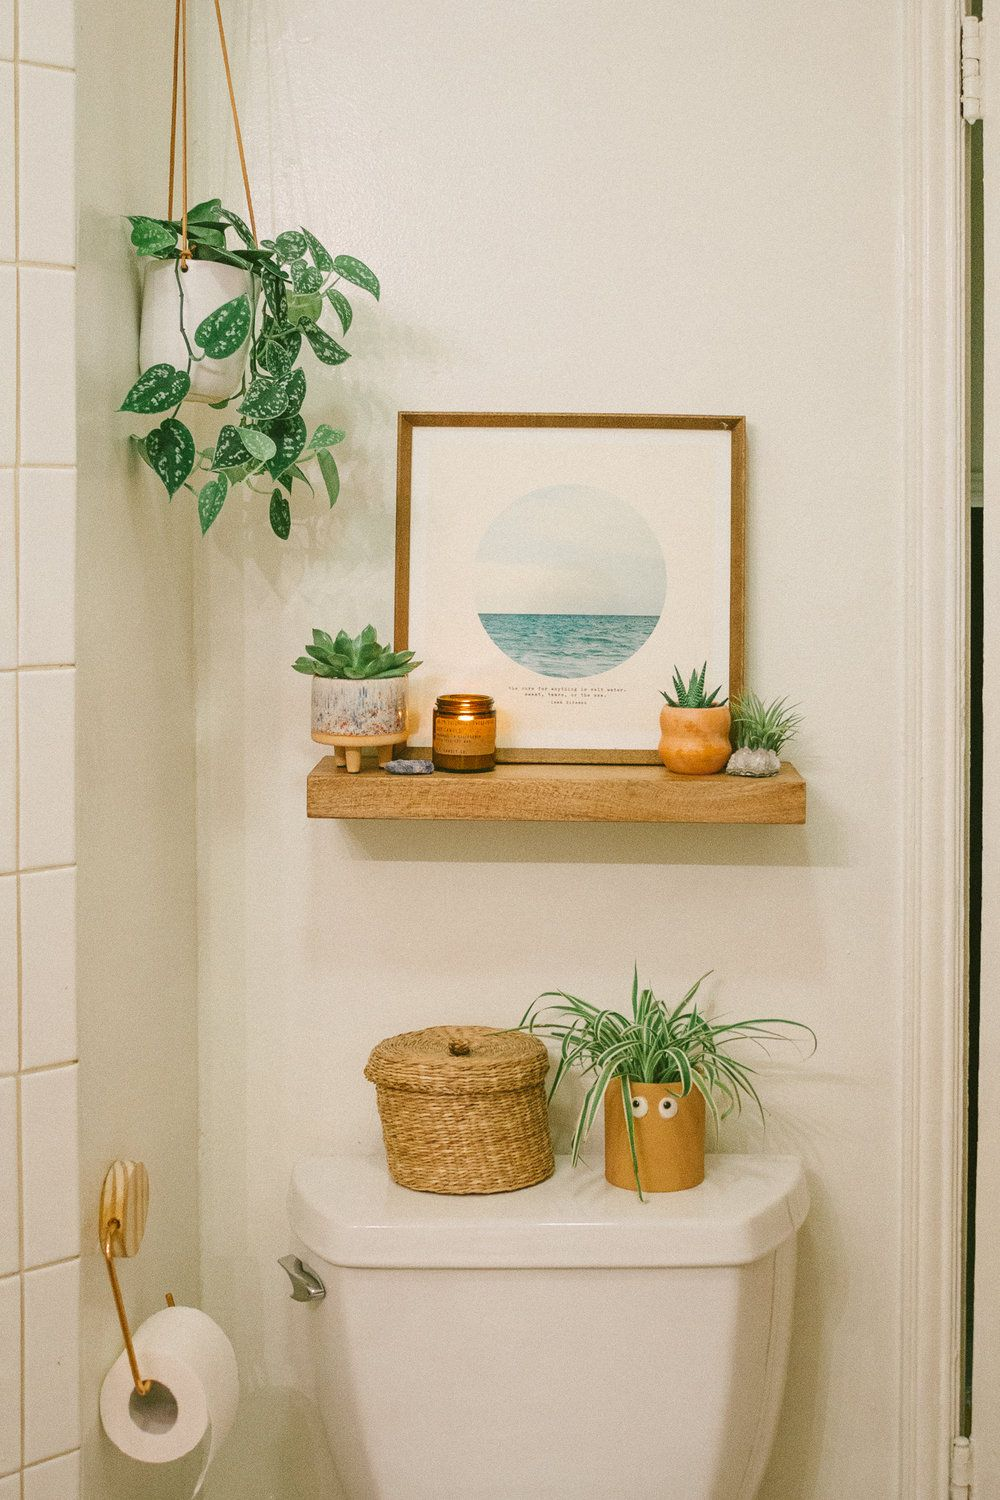 Bathroom Reveal: Before & After #bathroomdecoration